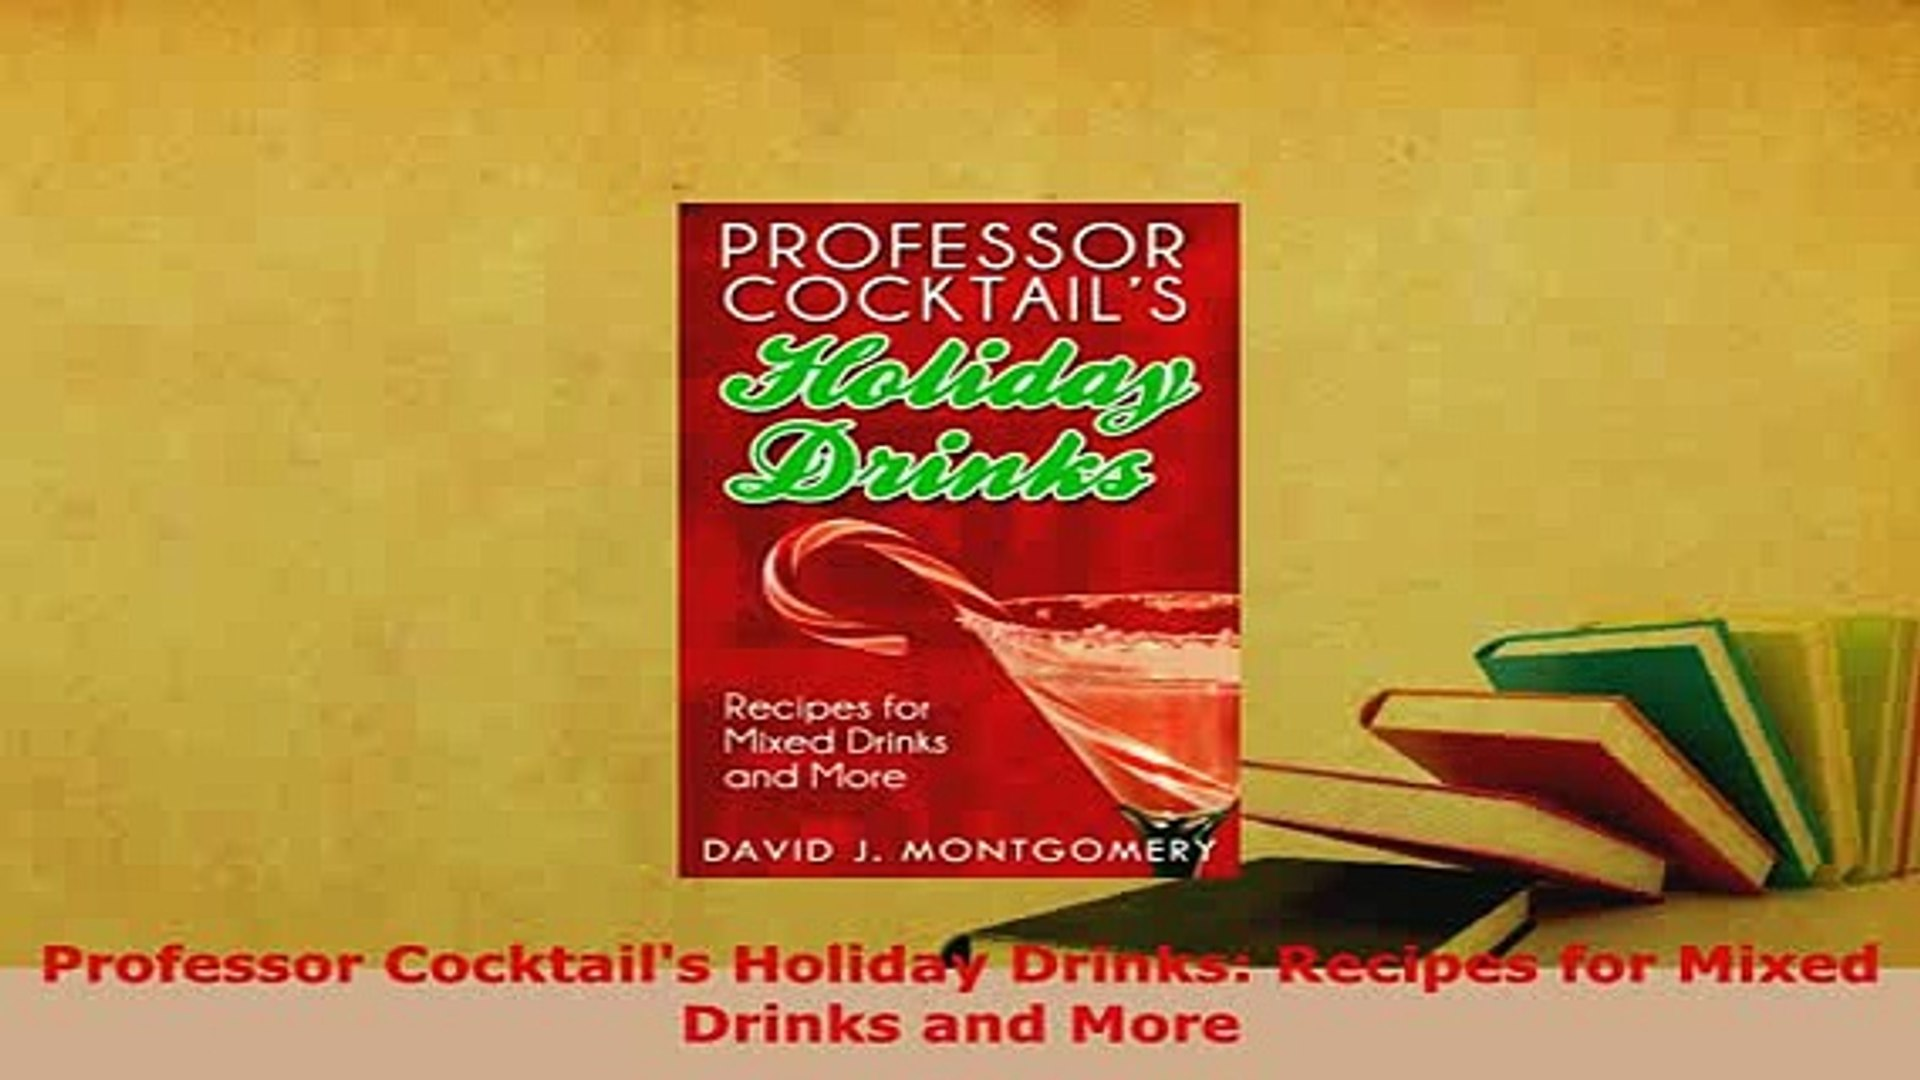 Download  Professor Cocktails Holiday Drinks Recipes for Mixed Drinks and More Read Online